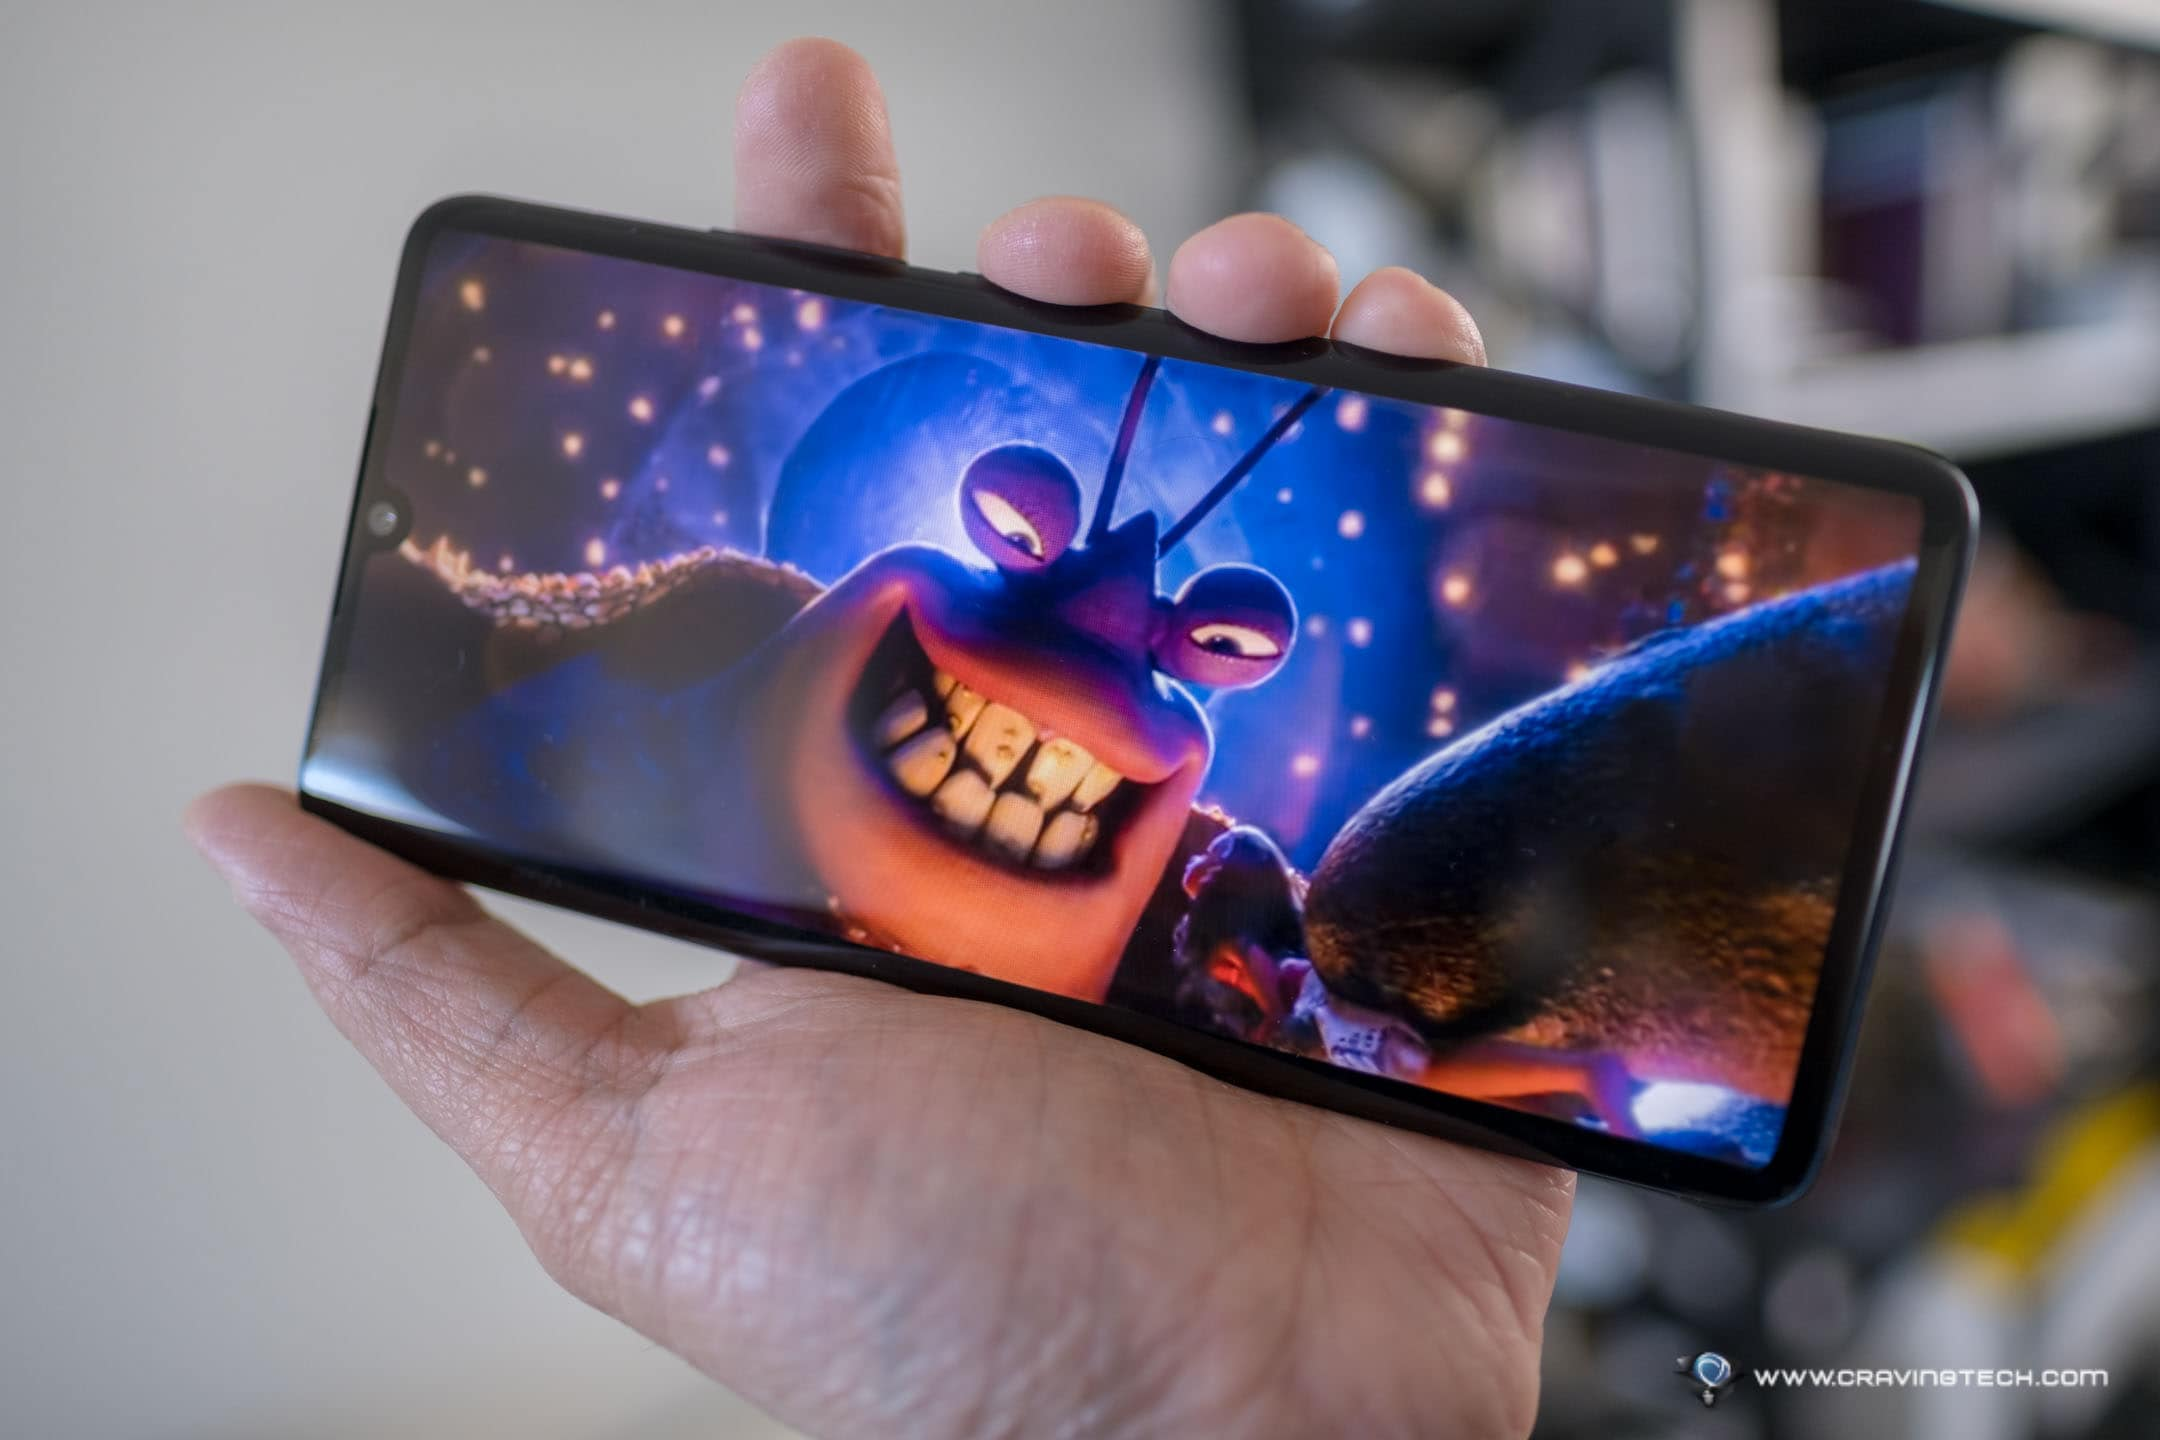 TCL 10 Pro Review - A mid-range Android phone with premium display